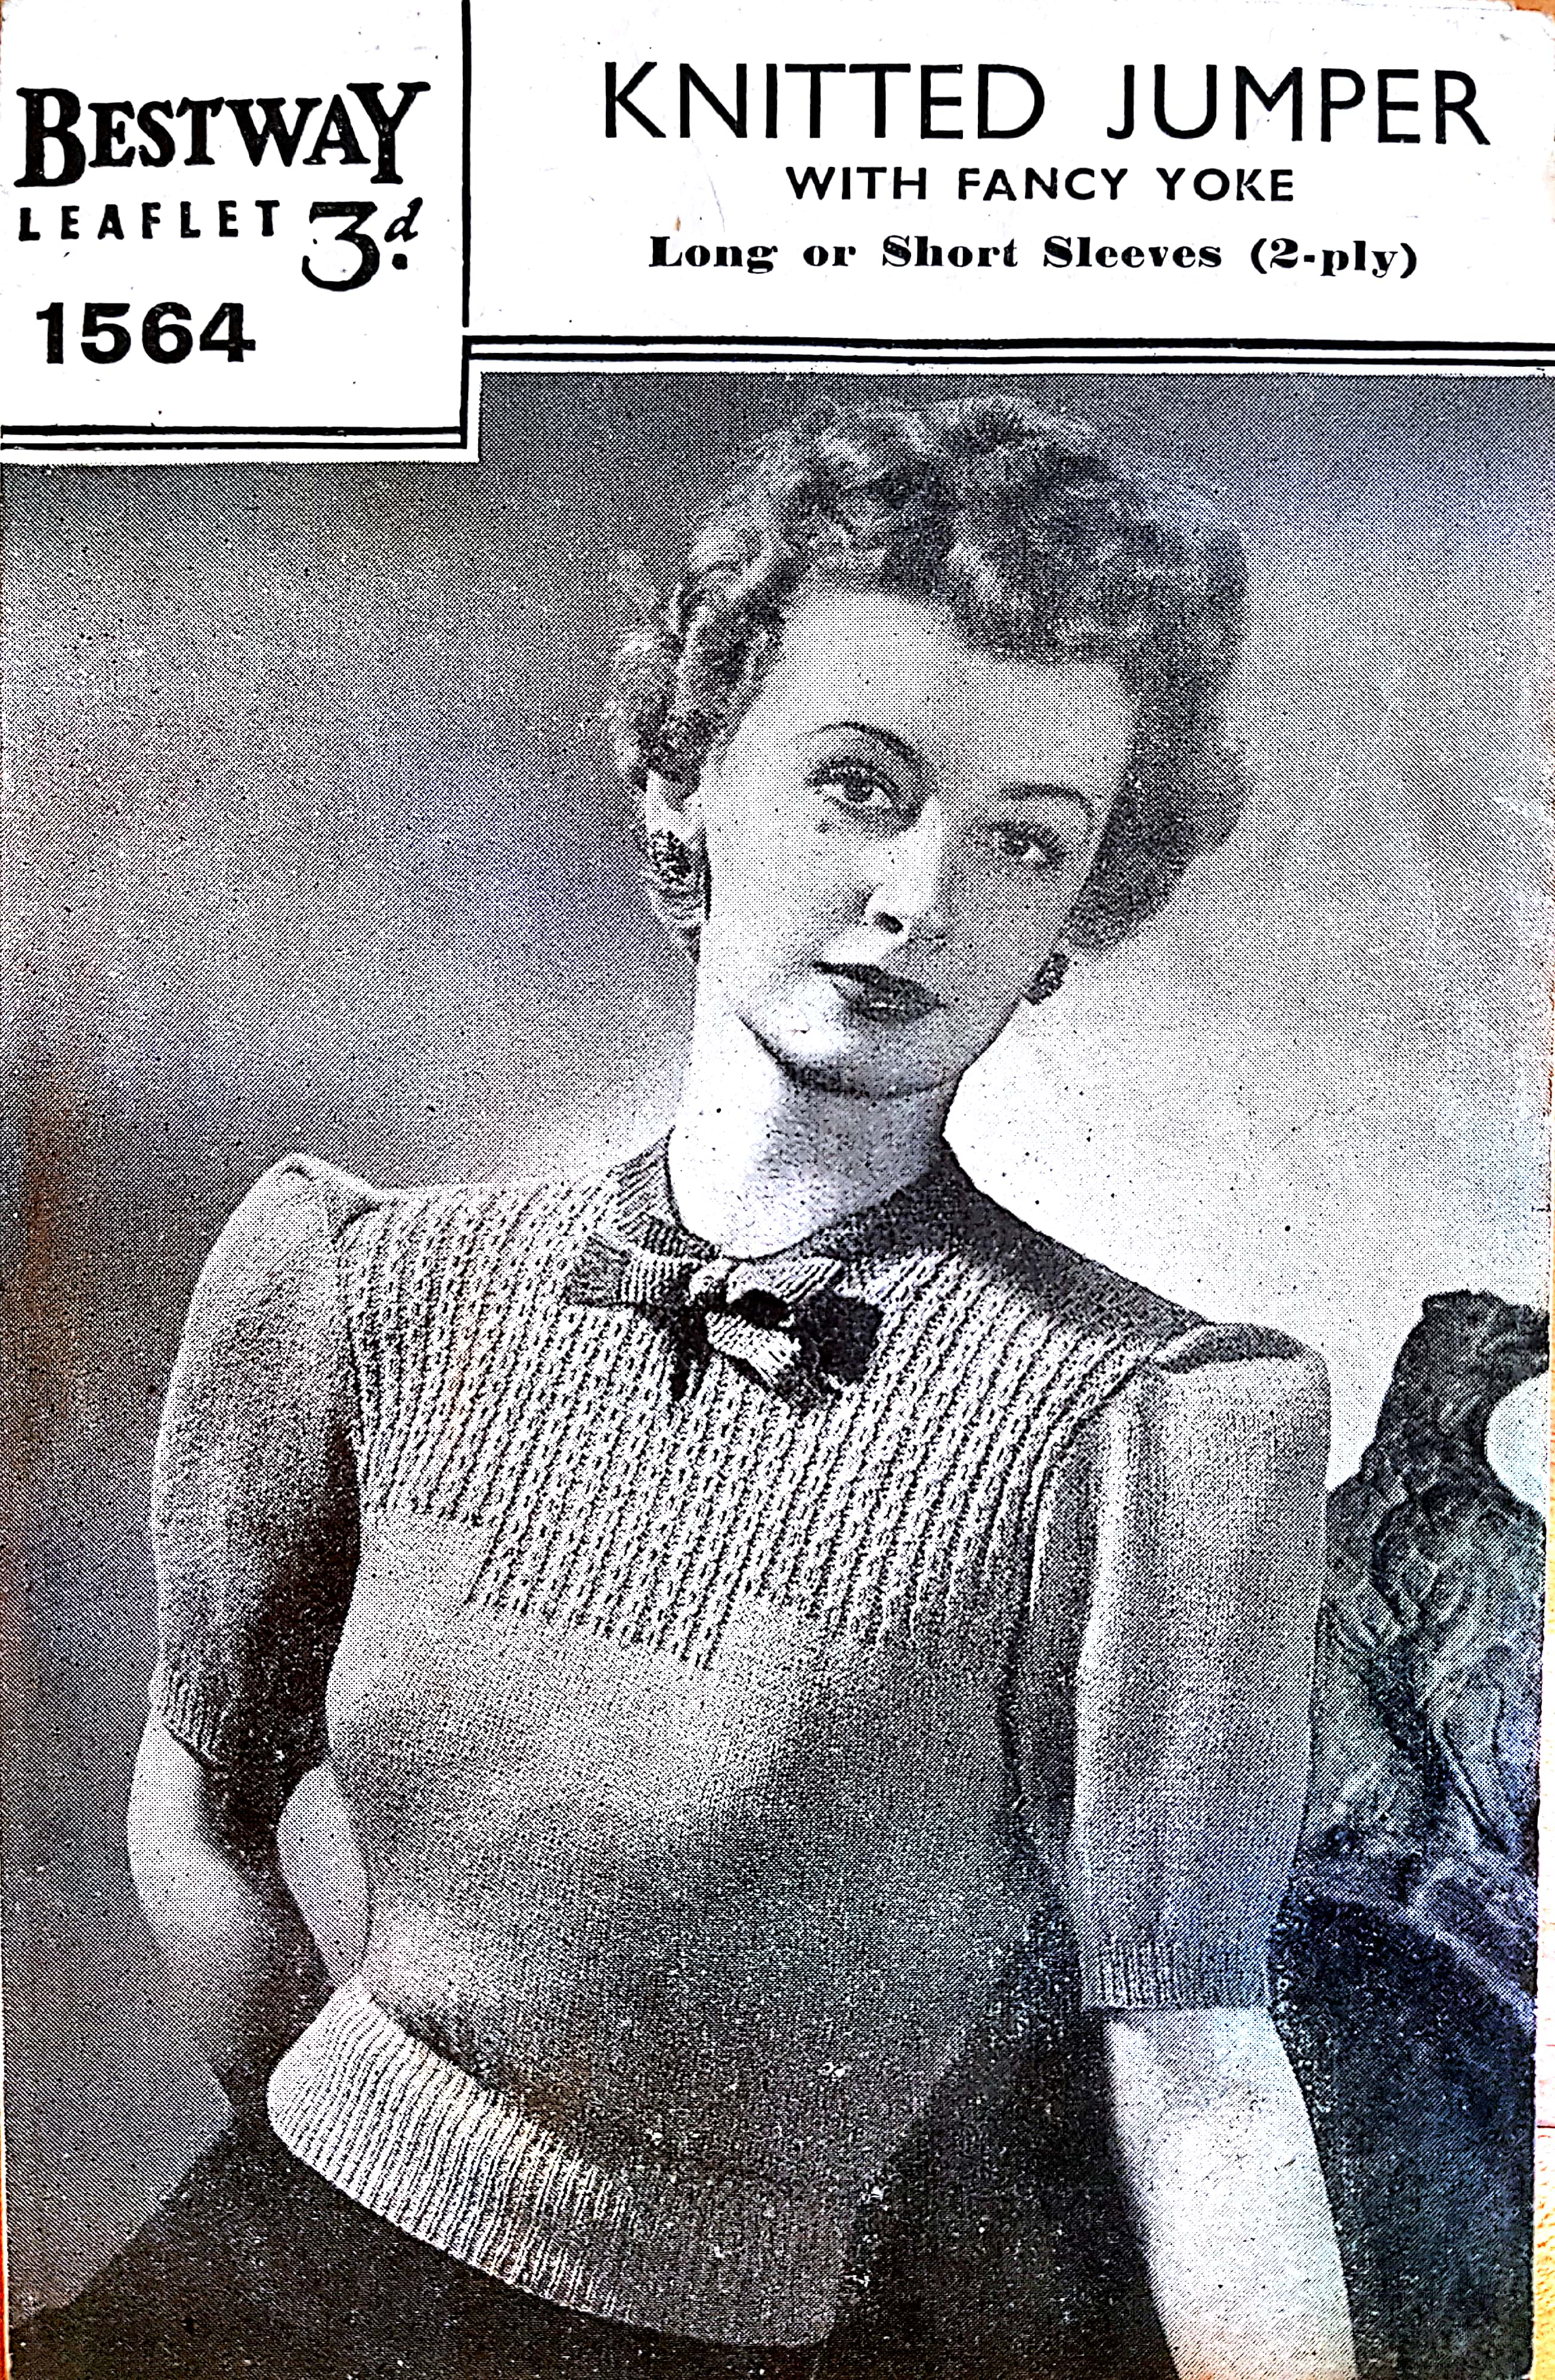 1940s Lace and Fair Isle Blouse 2-Ply Knitting Pattern PDF Download Vintage Knitting Pattern